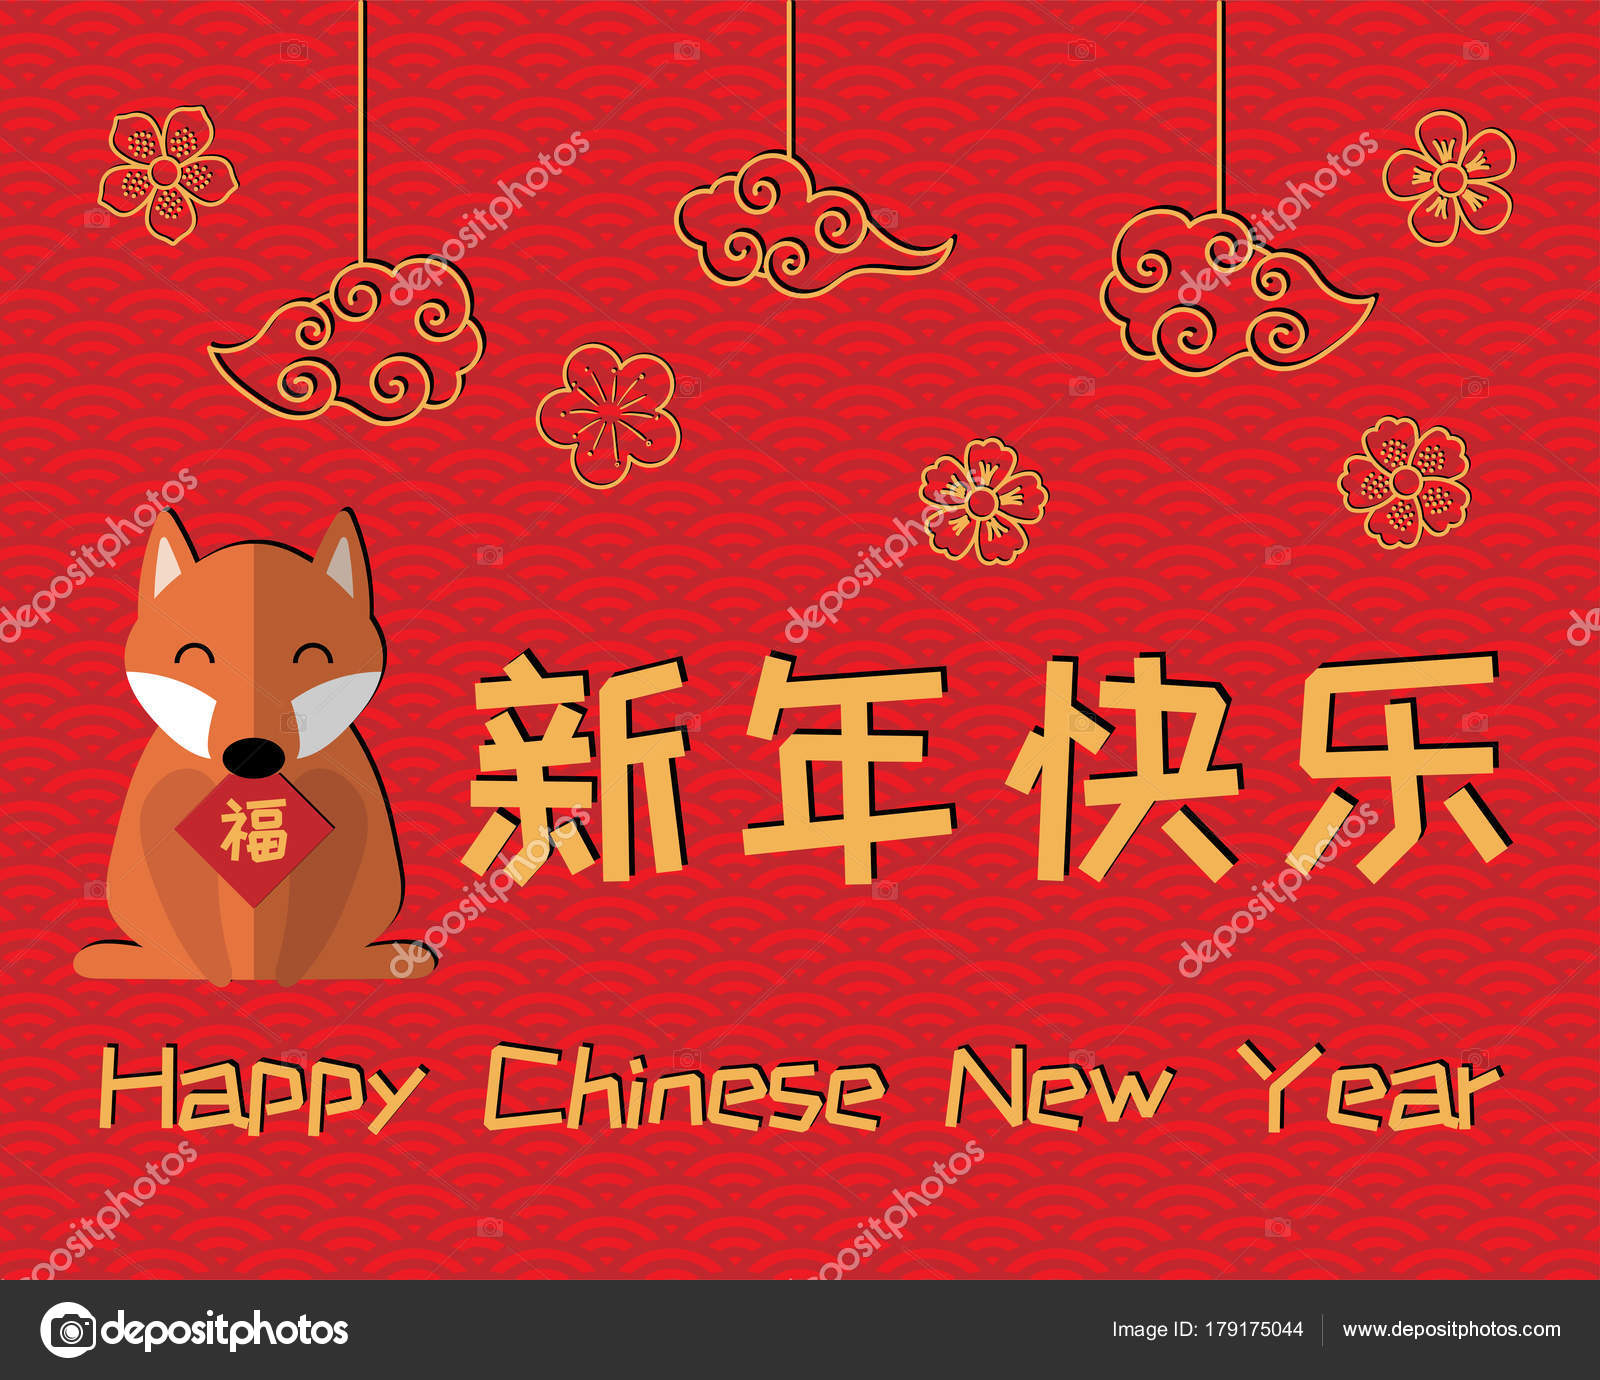 2018 chinese new year greeting card stock vector mariaskrigan 2018 chinese new year greeting card stock vector kristyandbryce Images